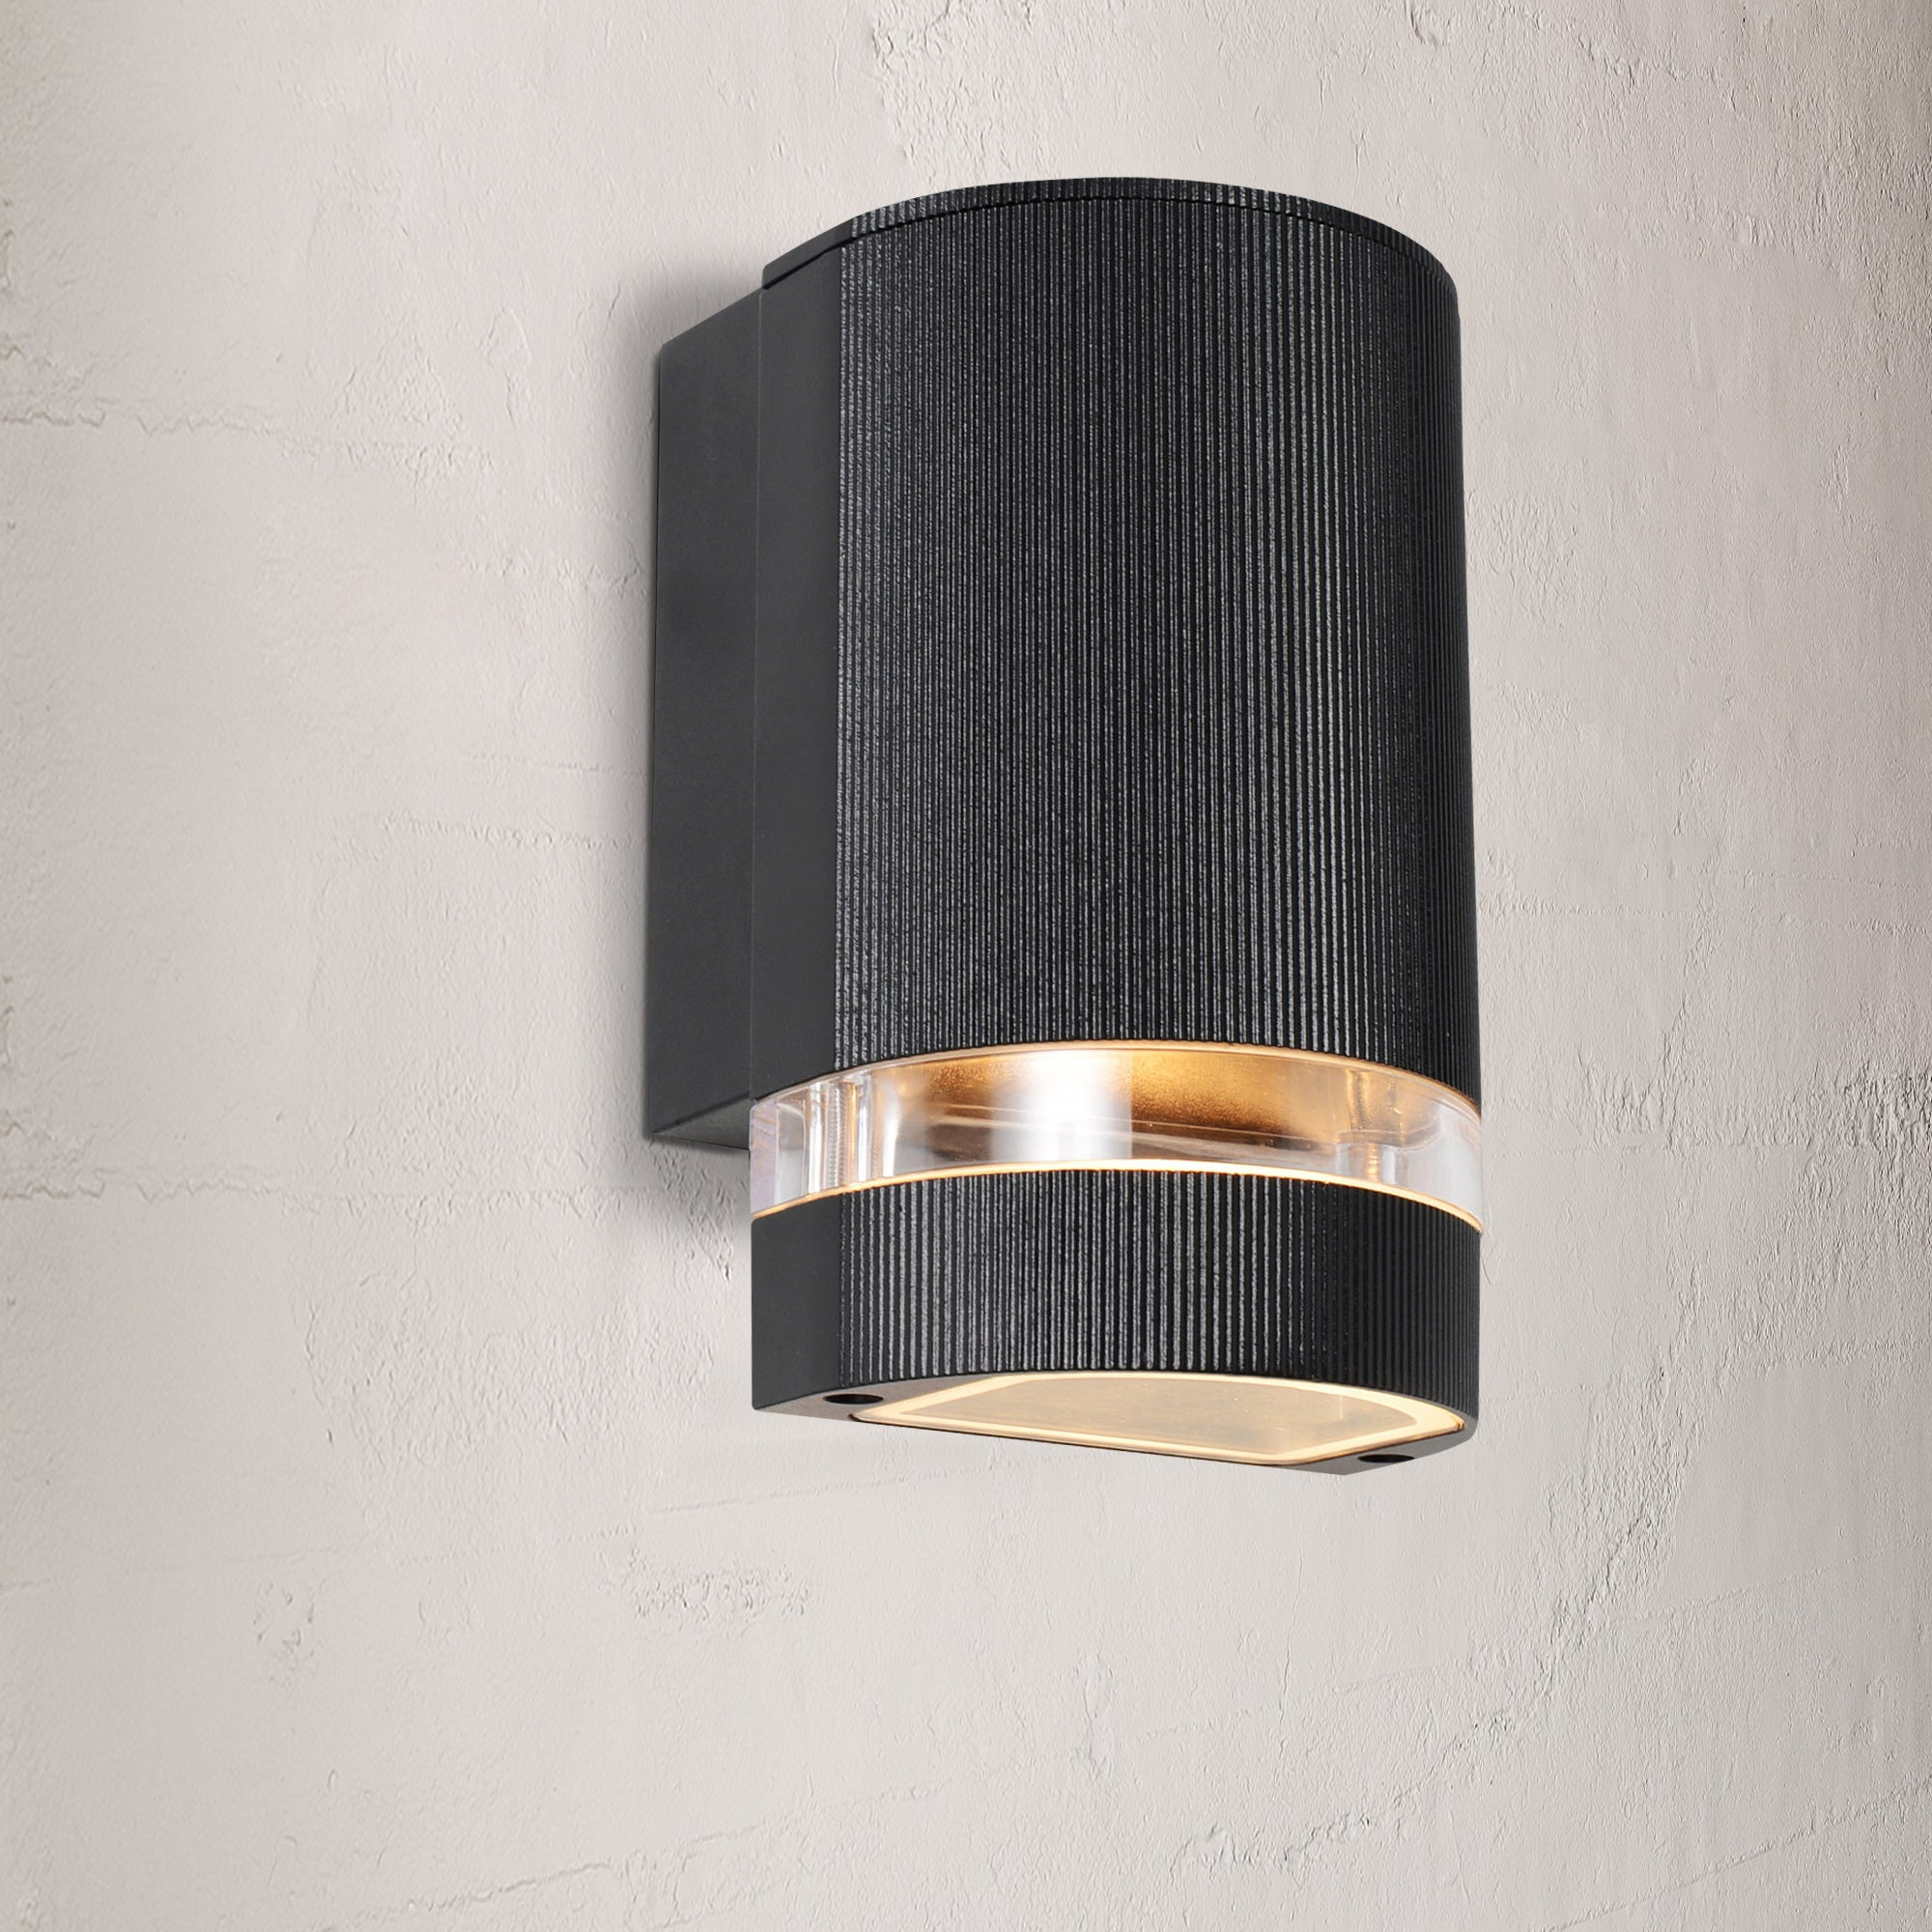 Image of Helios Black Up or Down Outdoor Light Black